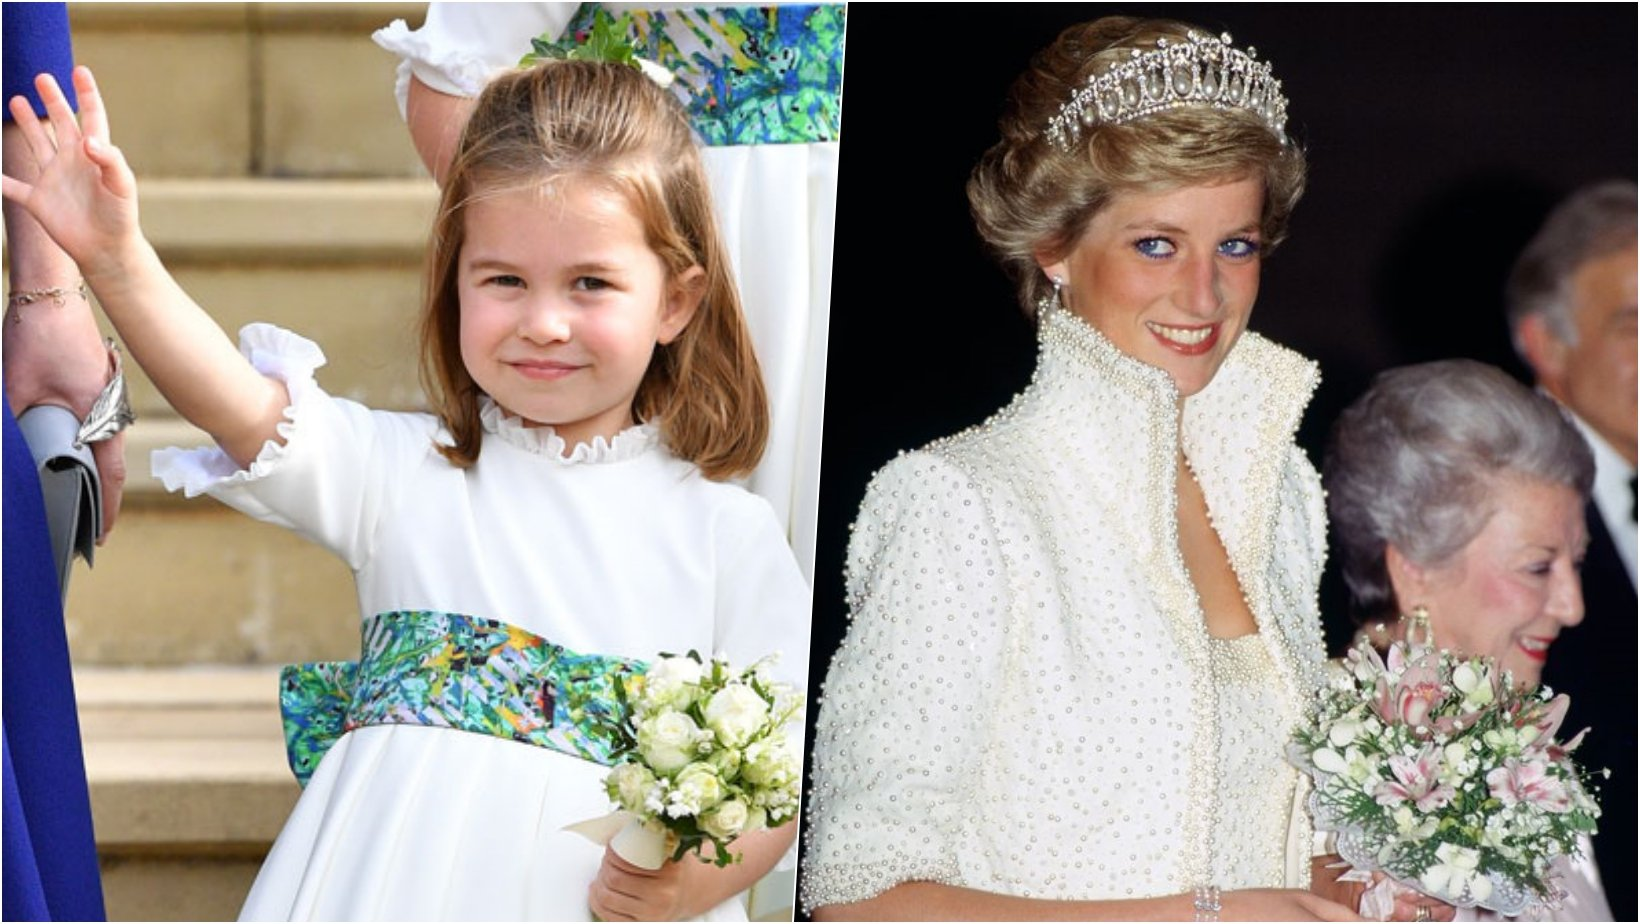 6 facebook cover 28.jpg?resize=412,275 - Princess Diana's PRICELESS Wedding Heirloom Is Gifted To Princess Charlotte Instead Of Meghan And Prince Harry's Daughter, Lili